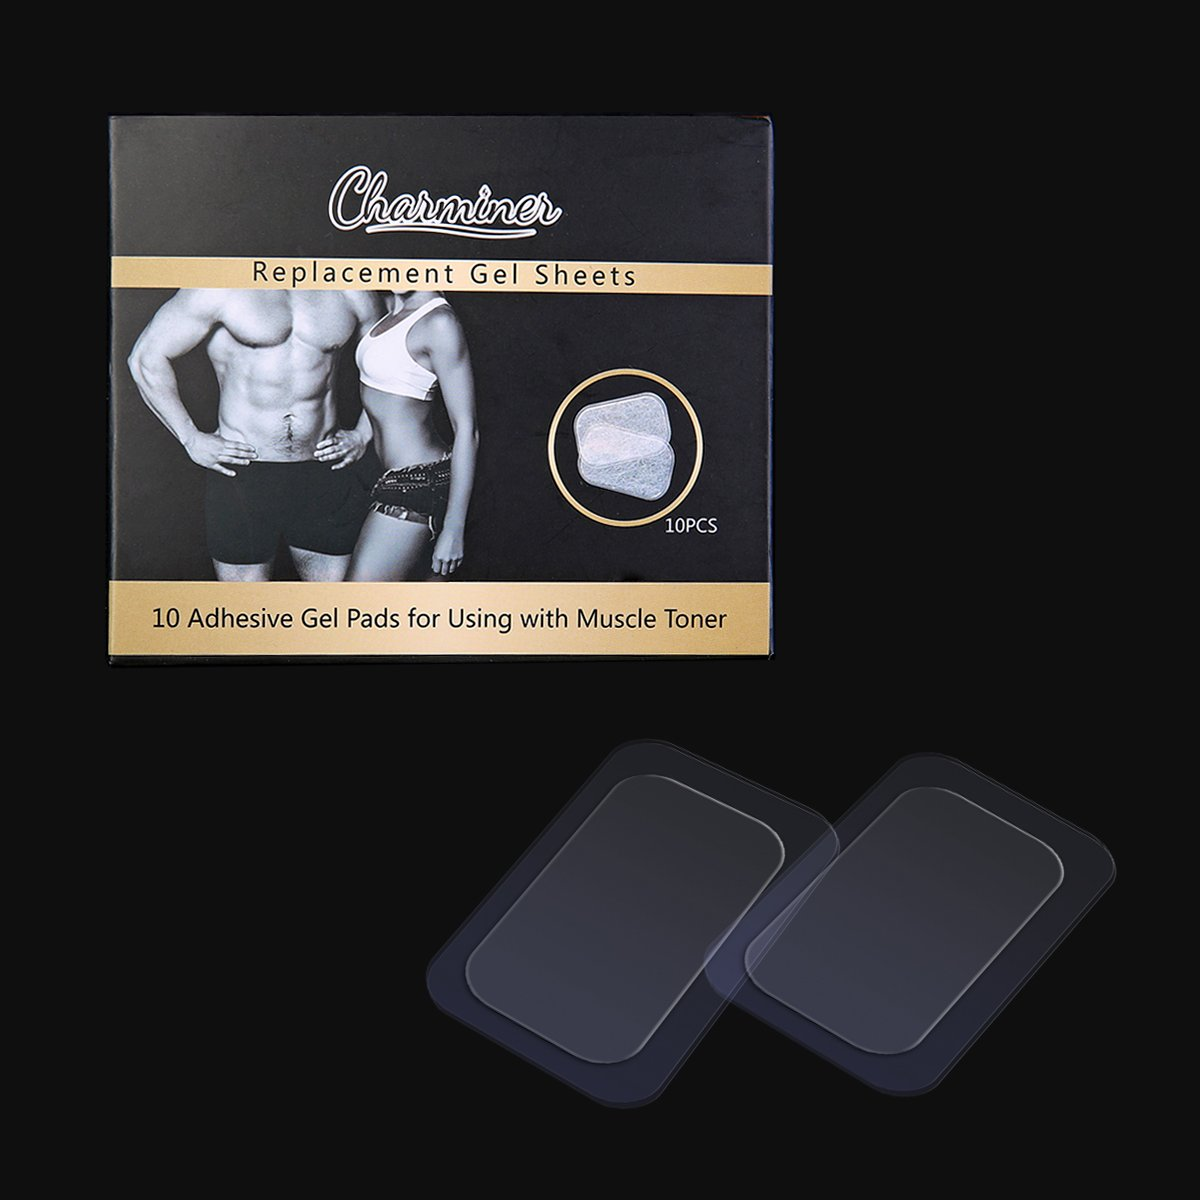 Abs Toner Replacement Gel Sheet,Charminer Abdominal Toning Belt Muscle Toner Abs Trainer Accessories High Conductive Gel Sheets For Gel Pads( 2pcs/packs, 5packs/box)